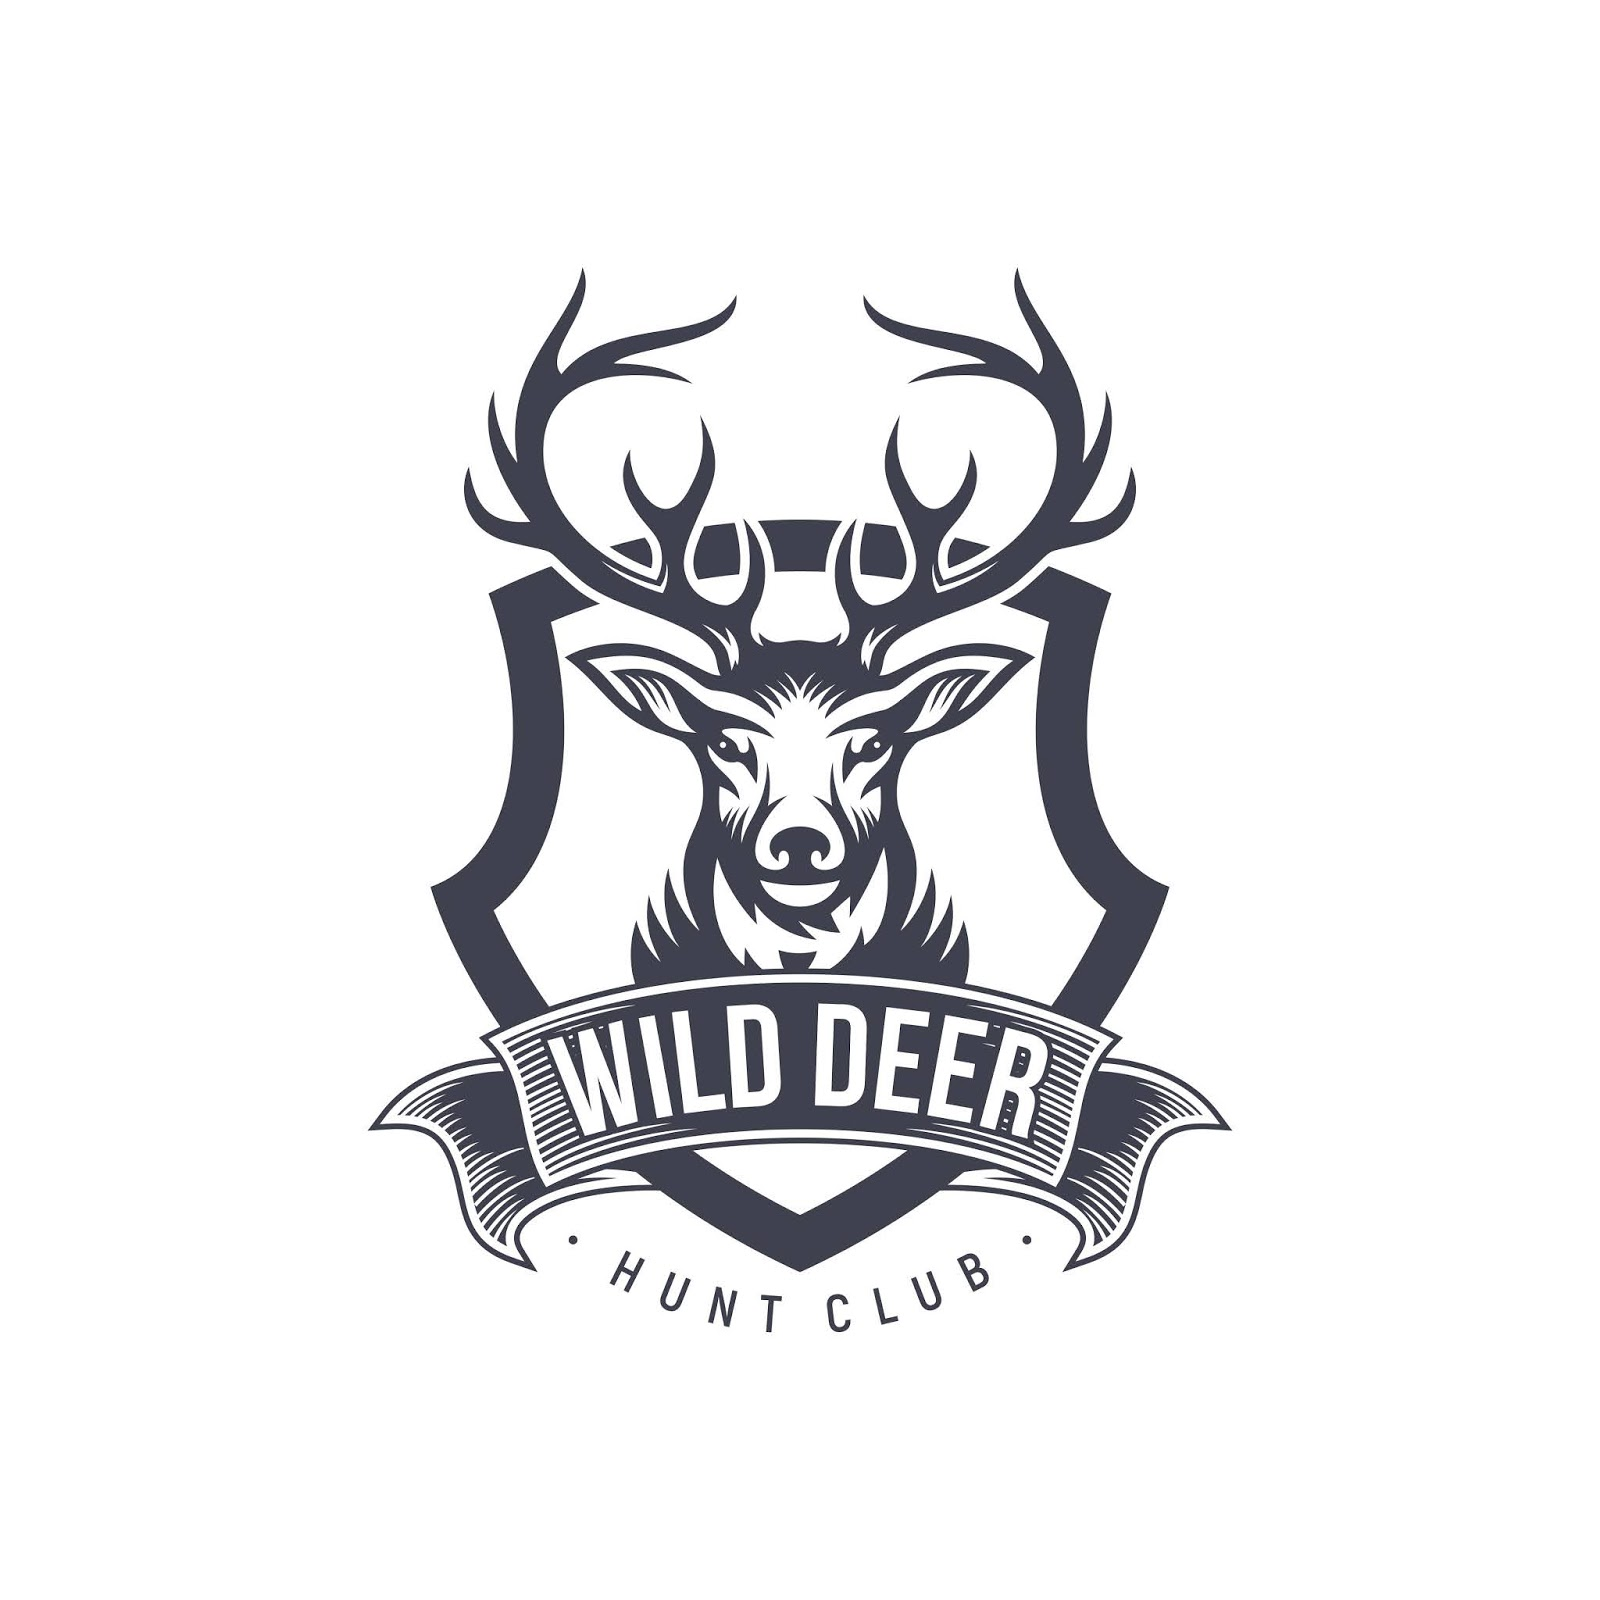 Vintage Deer Hunter Logo Design Free Download Vector CDR, AI, EPS and PNG Formats